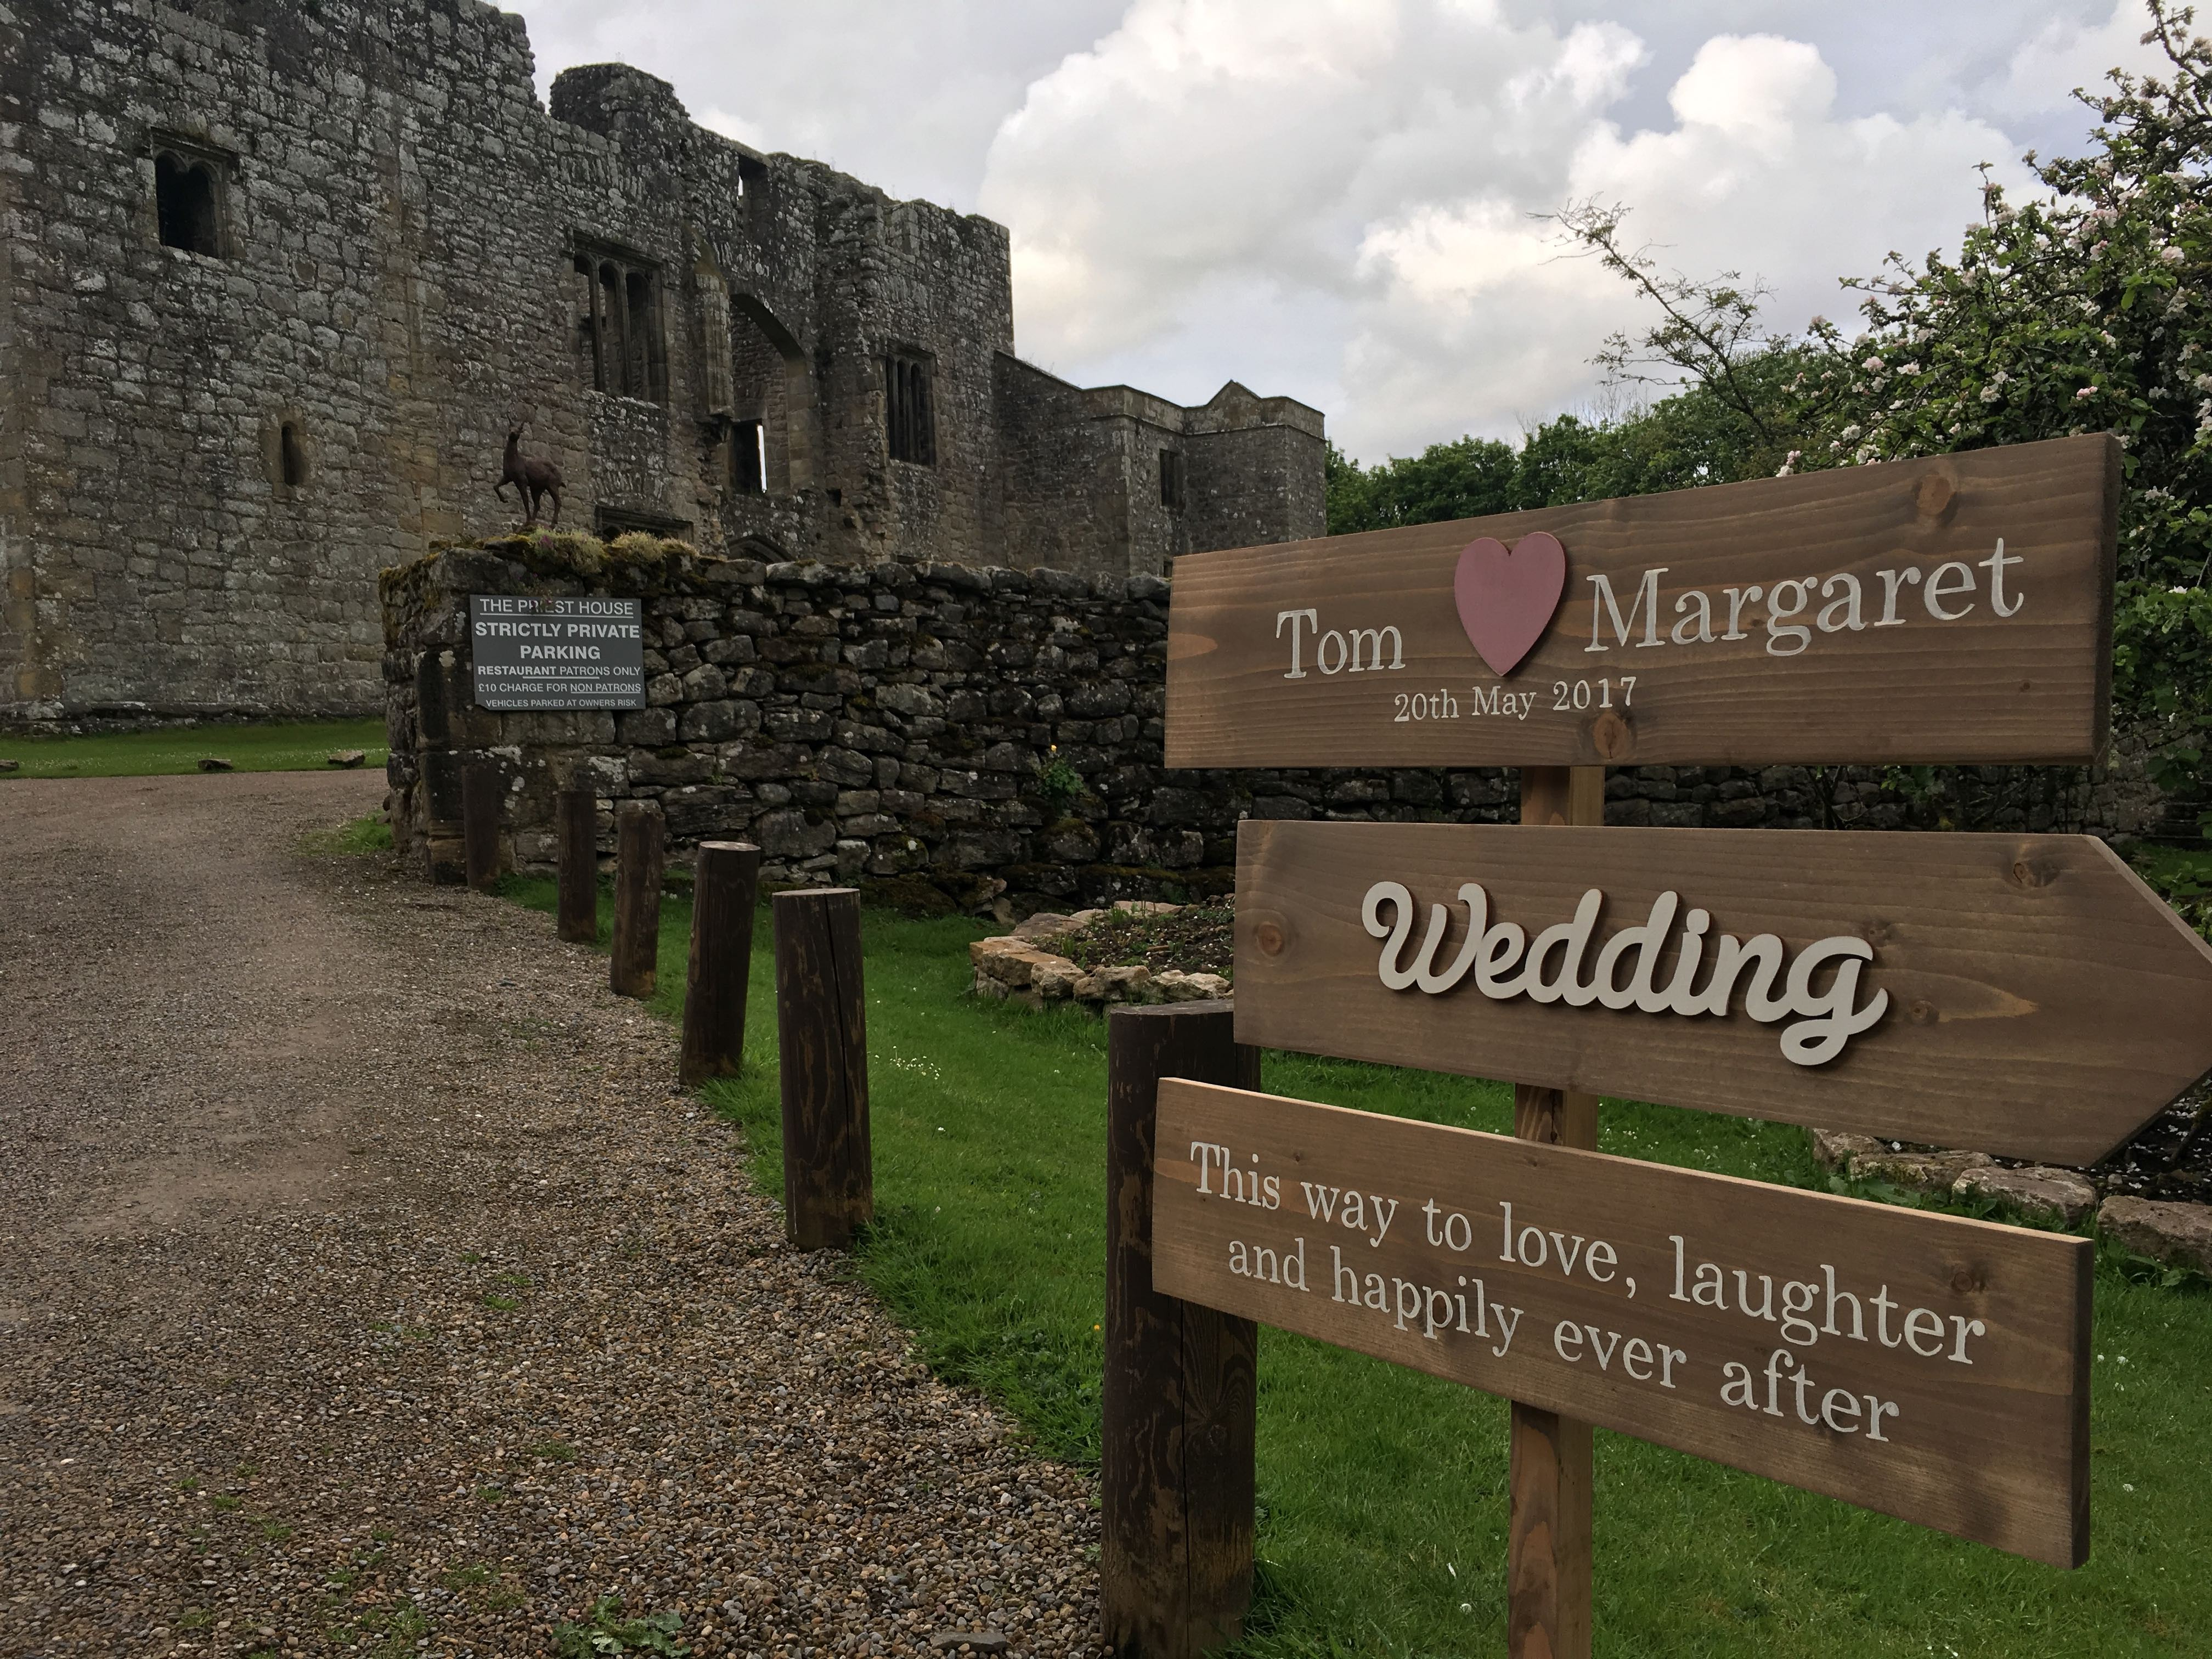 Great Wedding Gig @ The Priests House, Barden Tower